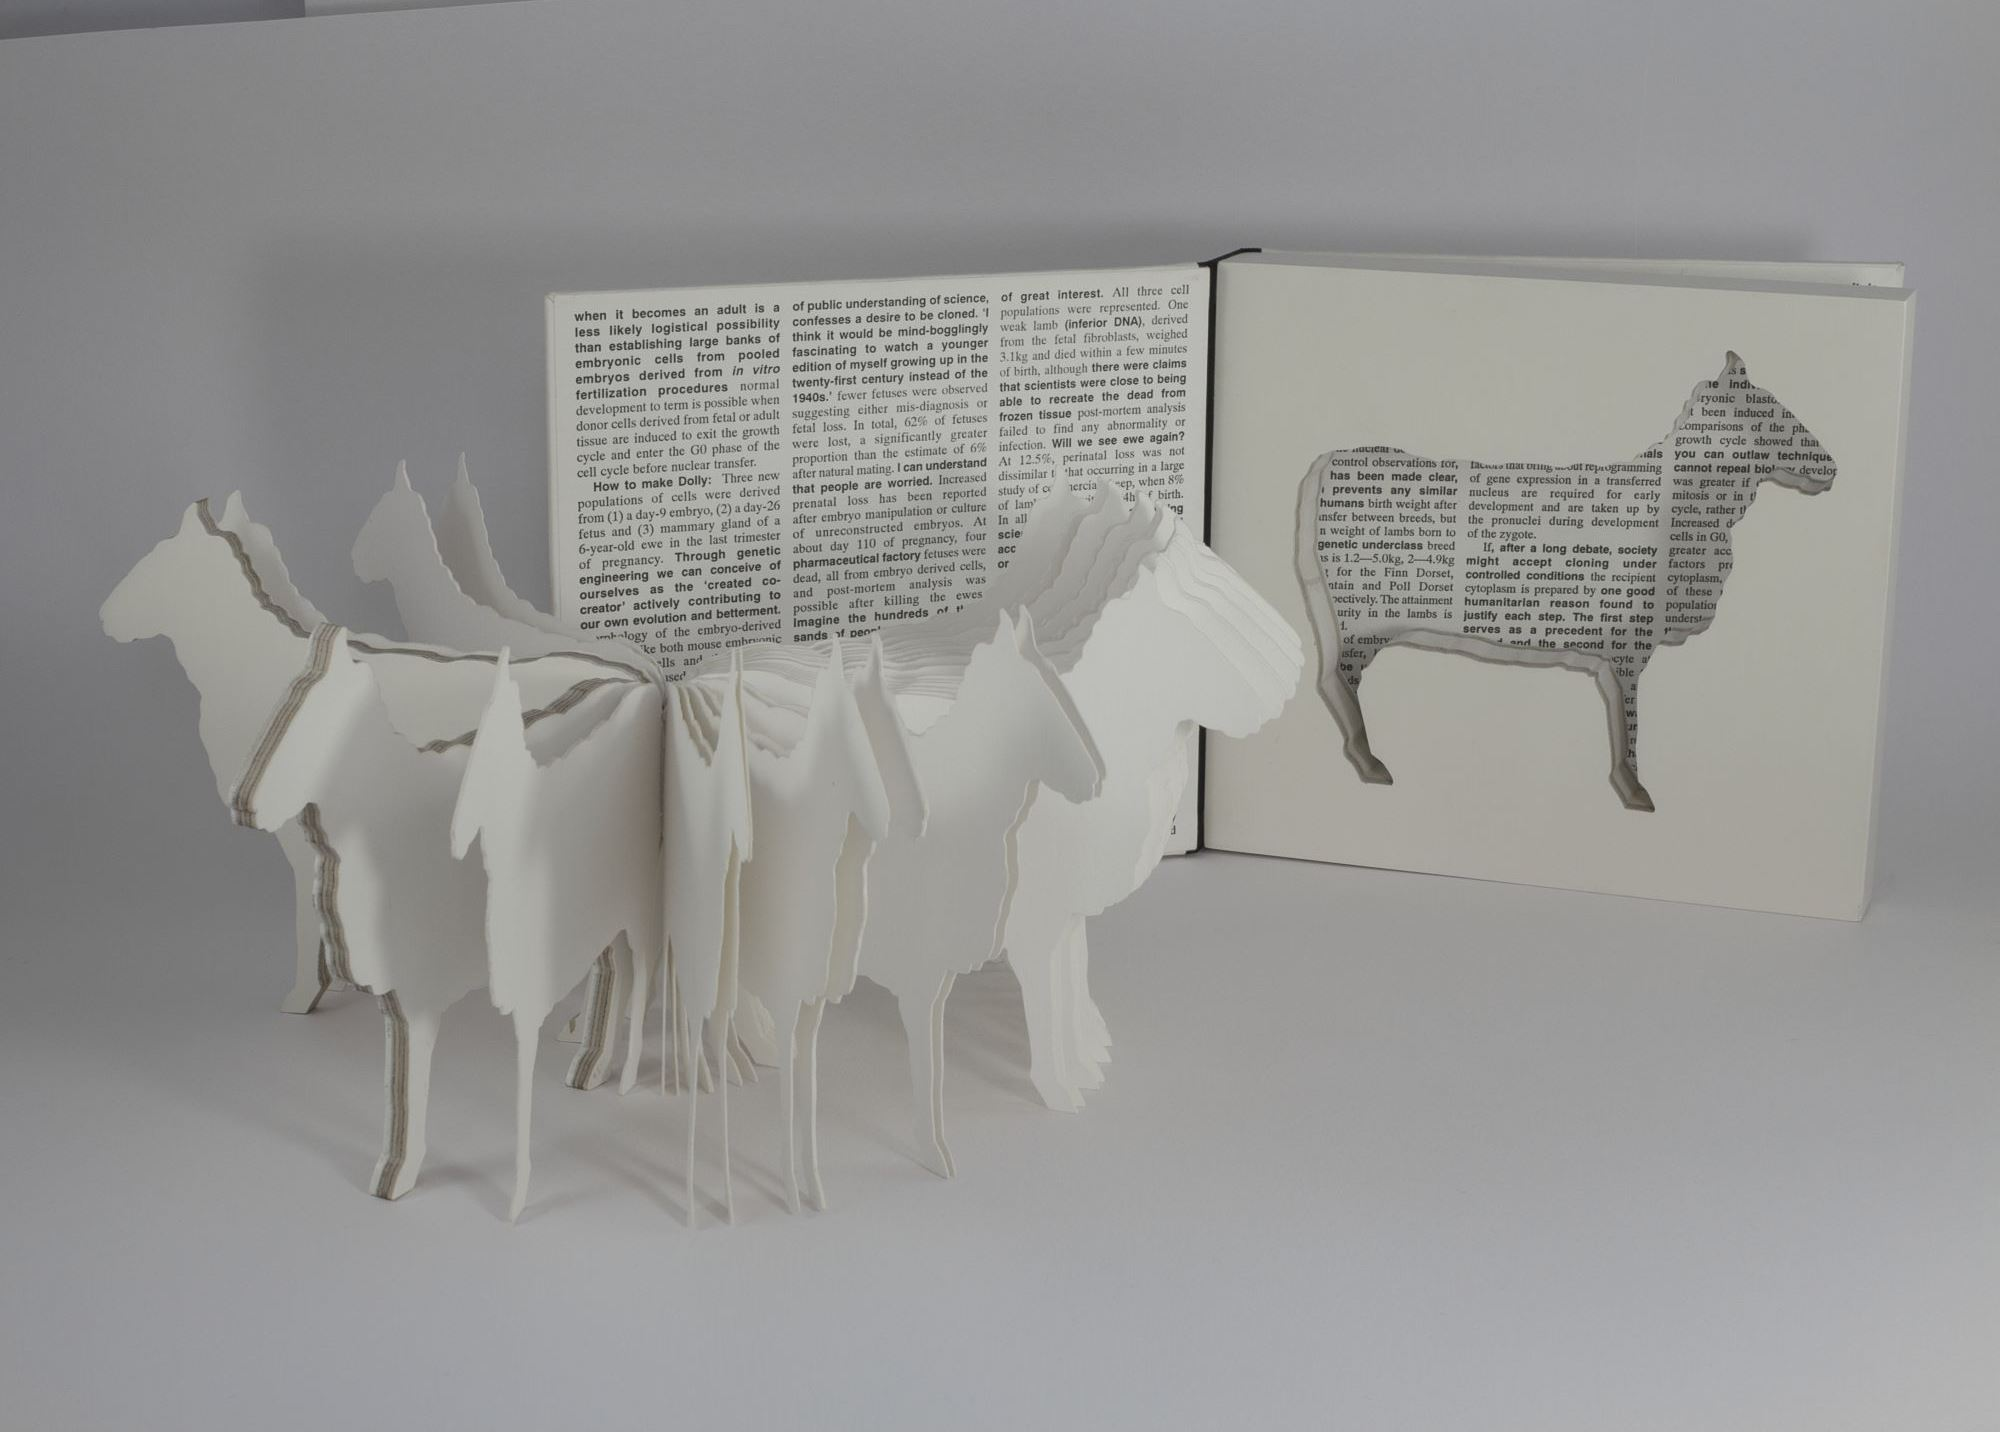 The world's first artificially cloned animal, Dolly the sheep, is reproduced repeatedly in this edition of seventeen artist's books, Dolly: edition unlimited.